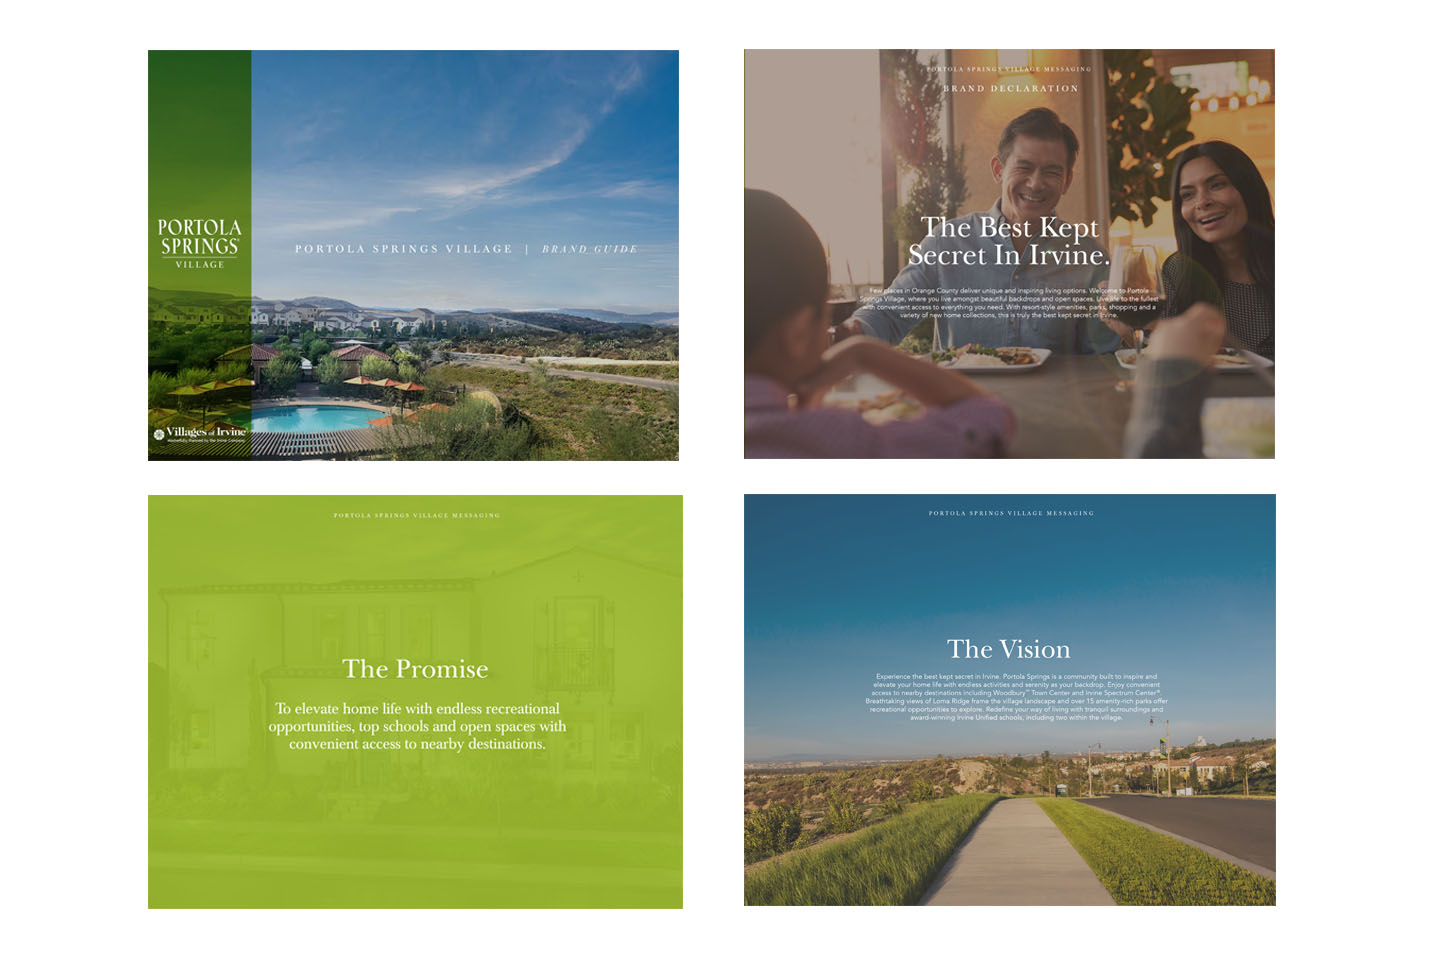 Orange County residential land development with family photos promise and vision